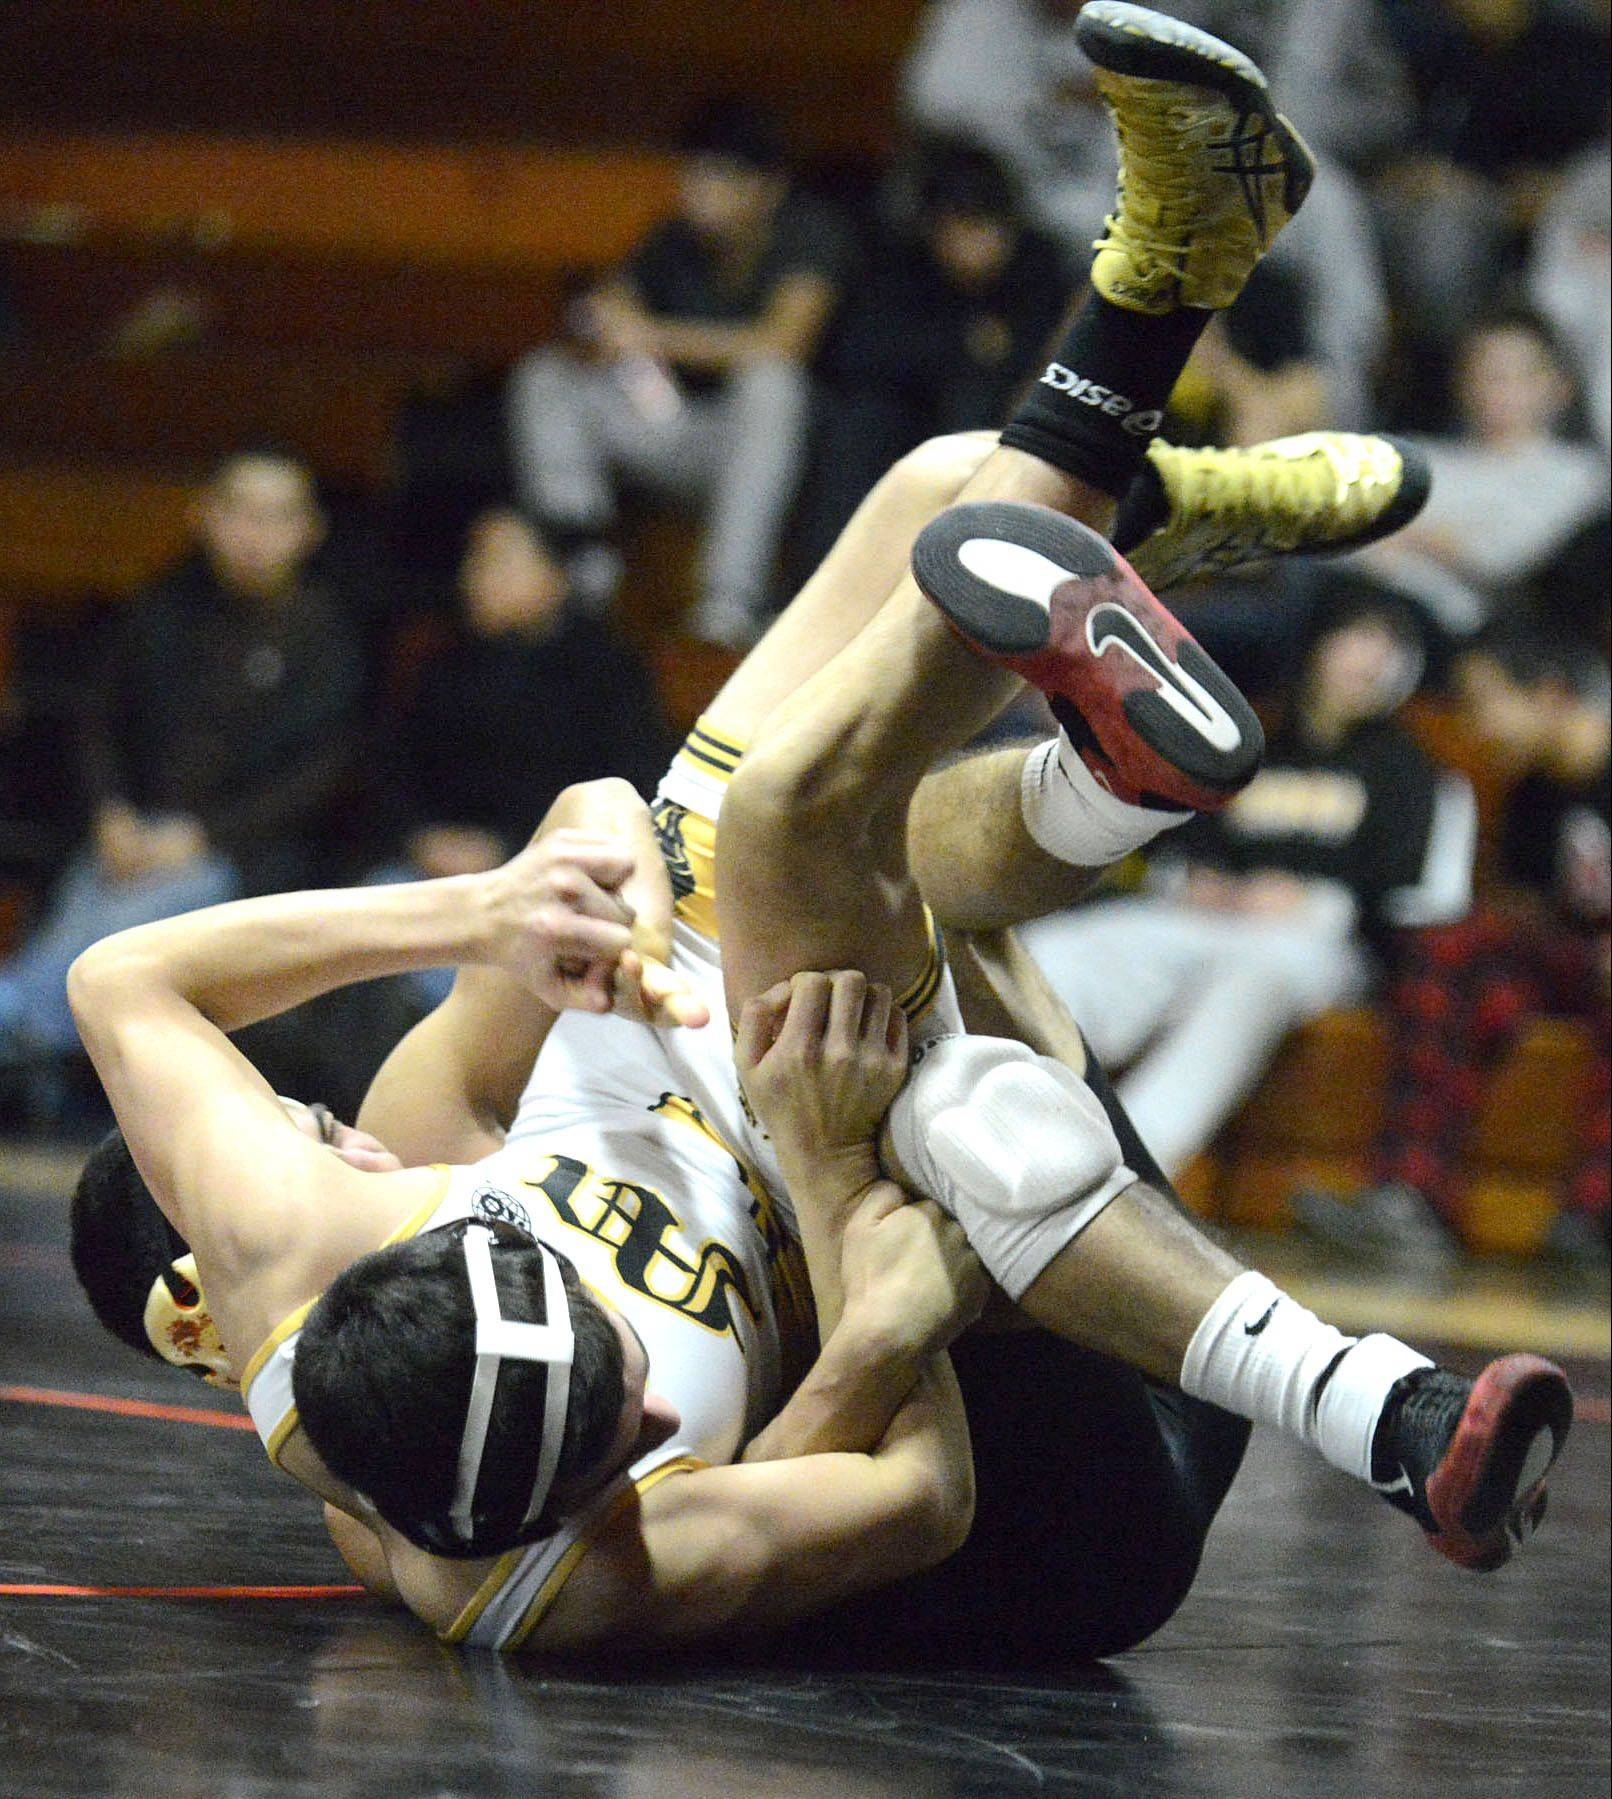 St. Charles East's Isaiah Vela flips Metea Valley's Juan Materino in their 138-pound match on Thursday. Vela won the match.